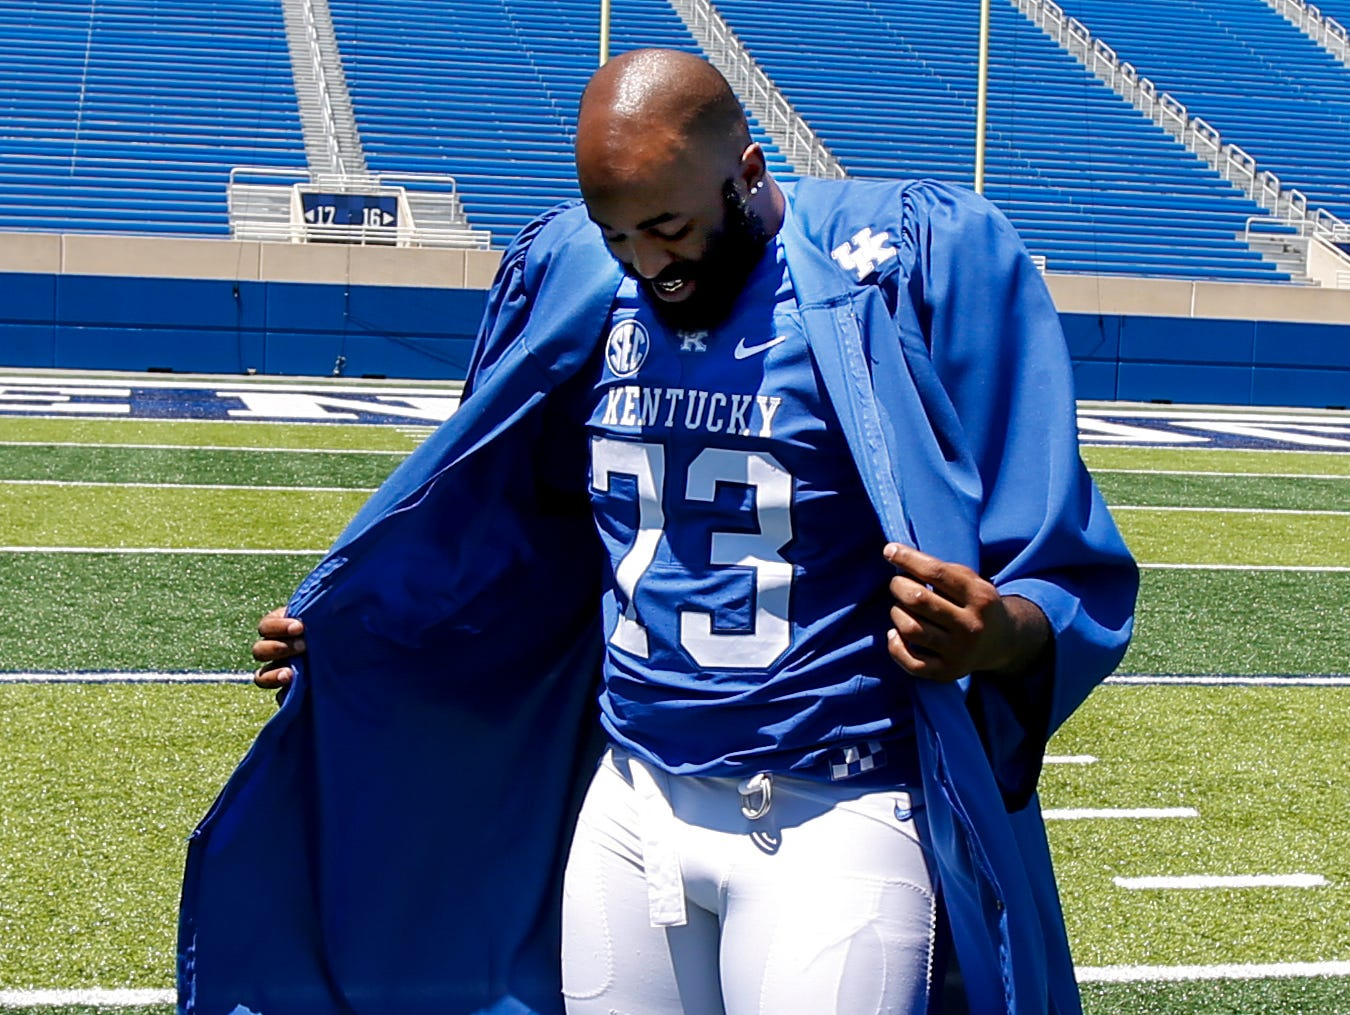 Kentucky's Kyle Meadows gets ready for his senior graduation photo. July 30, 2017